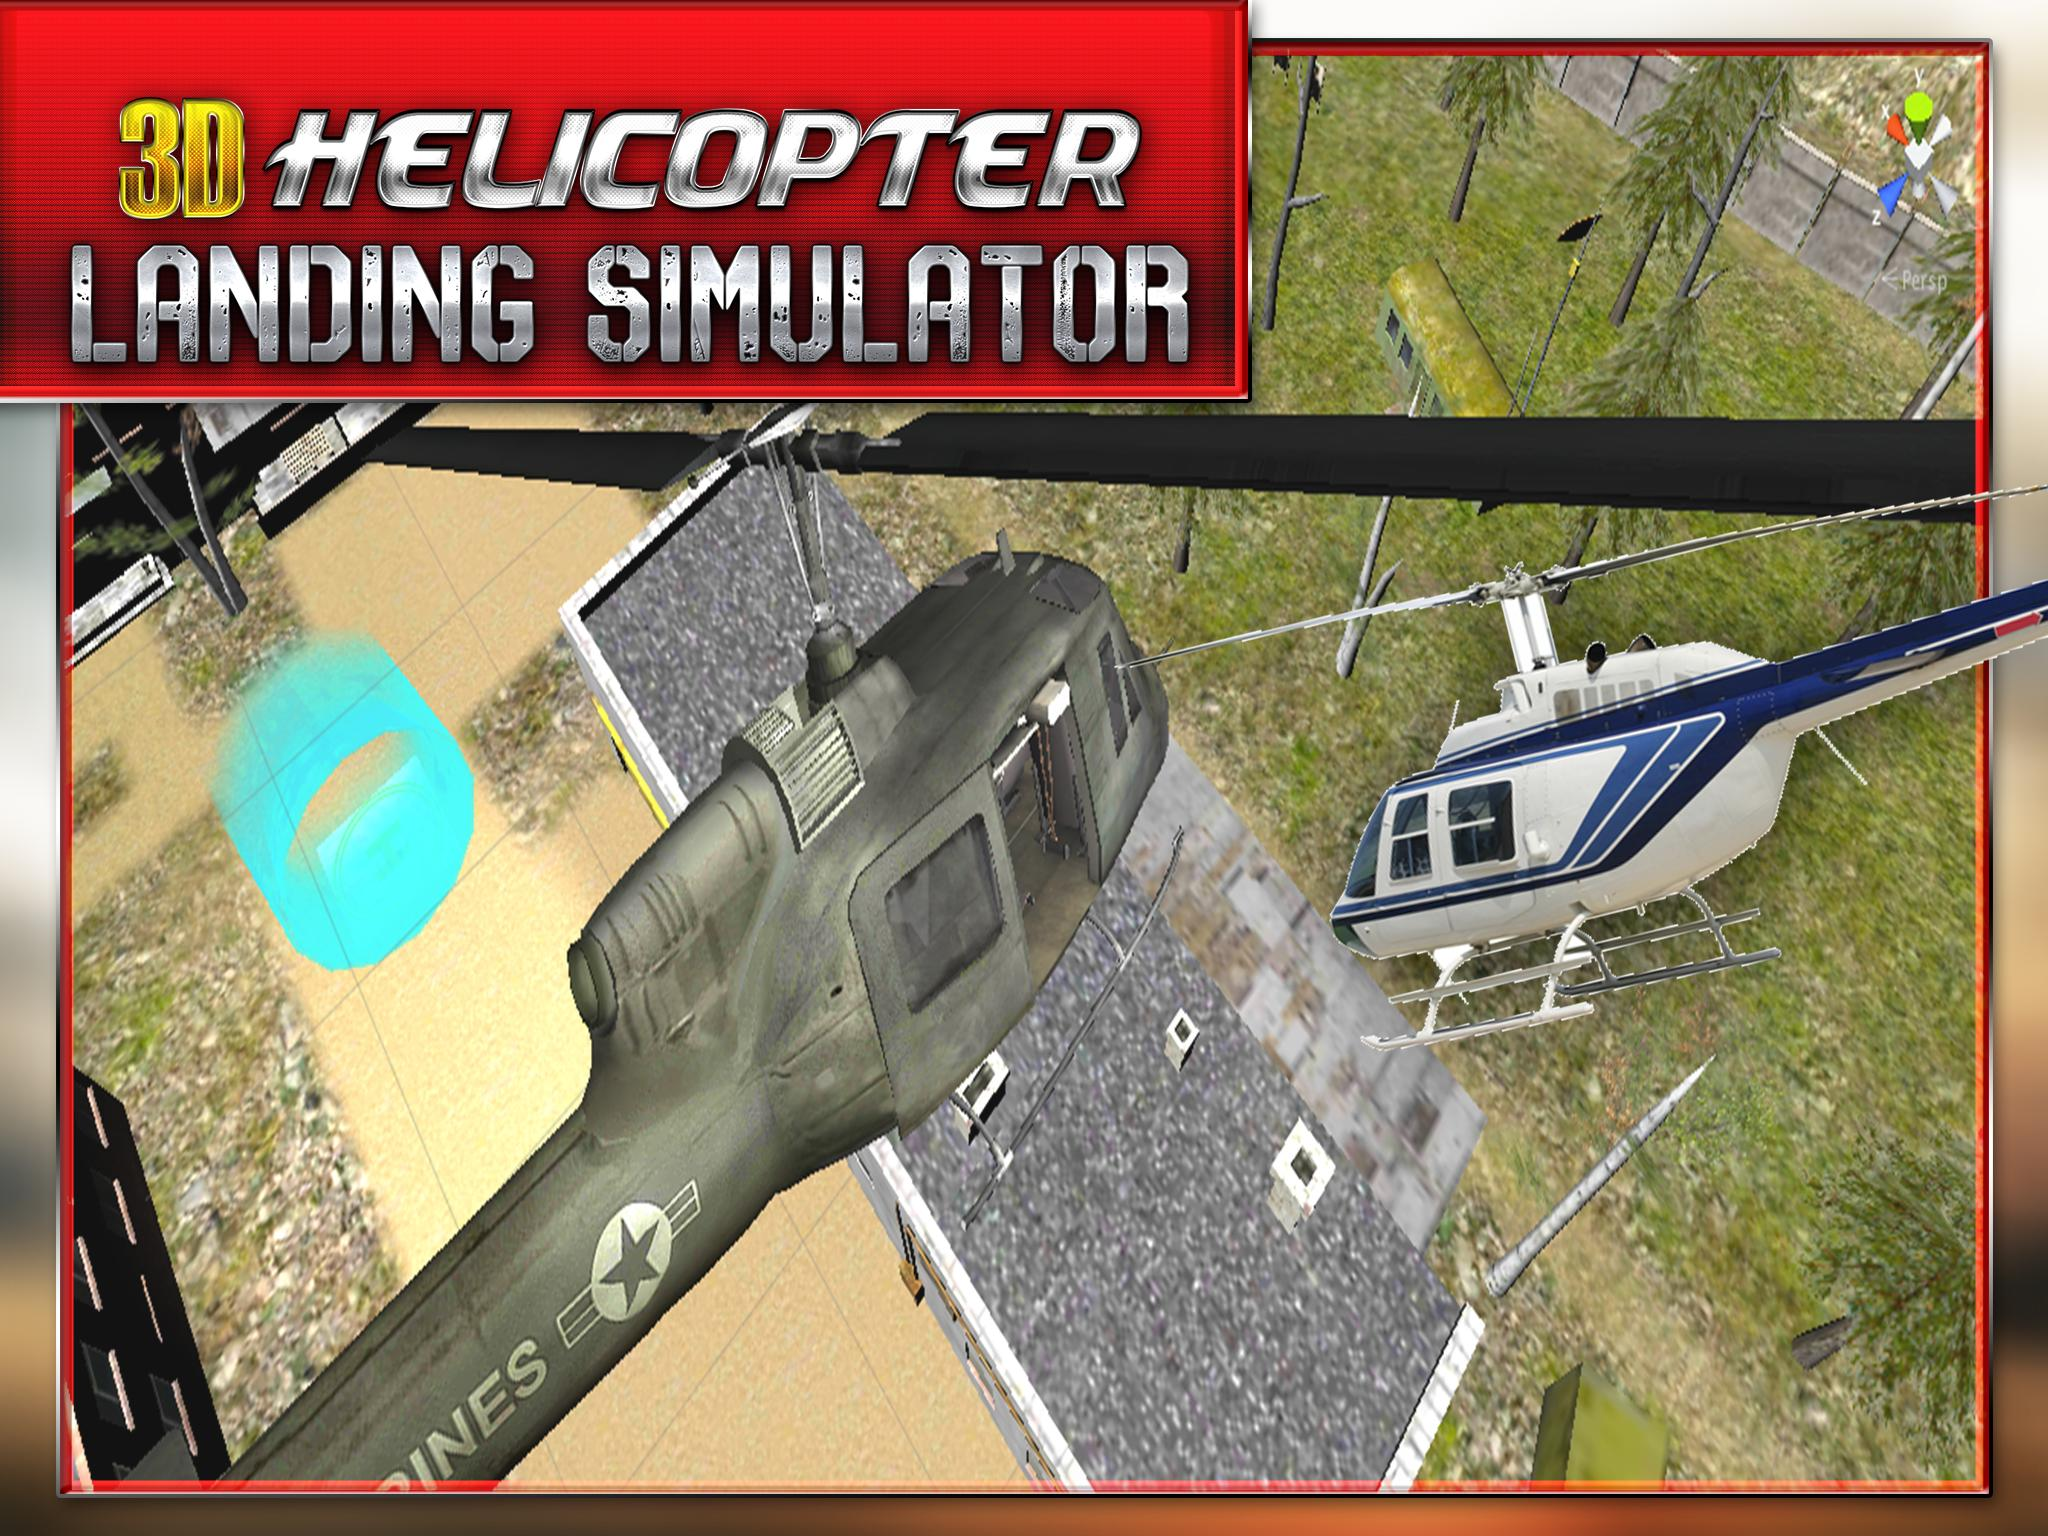 Helicopter Landing Simulator for Android - APK Download